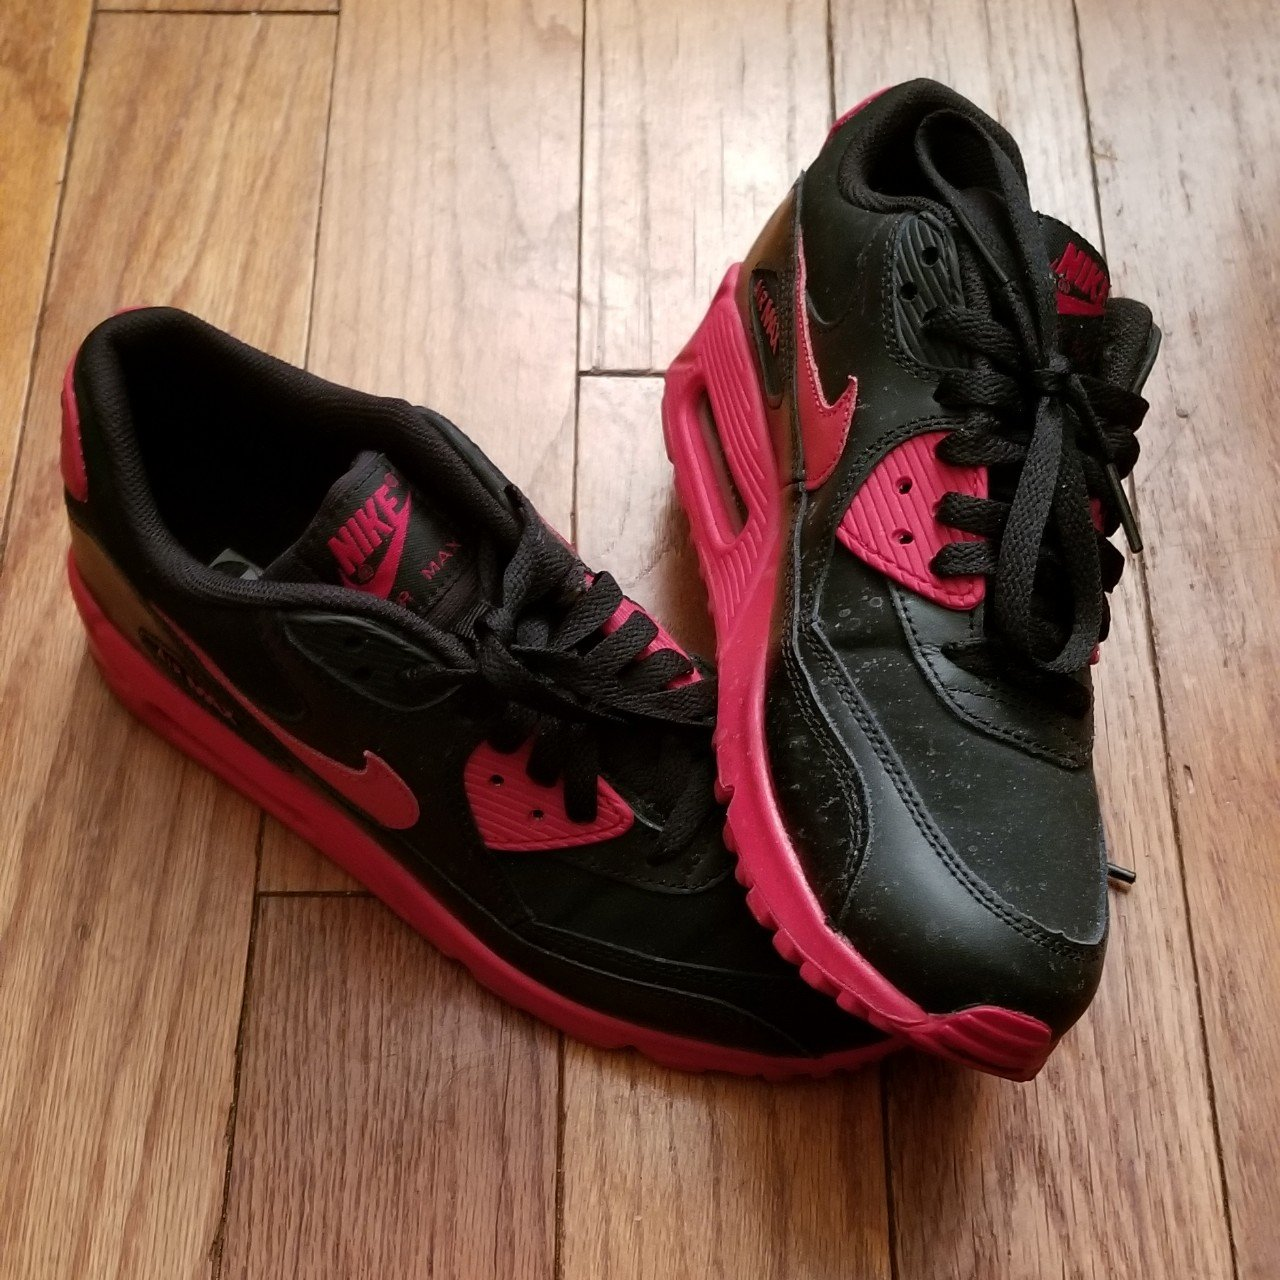 73d3049e8032 Nike Air Max 90 GS Black and Gym Red in size 7 (US) in 8.5 7 - Depop